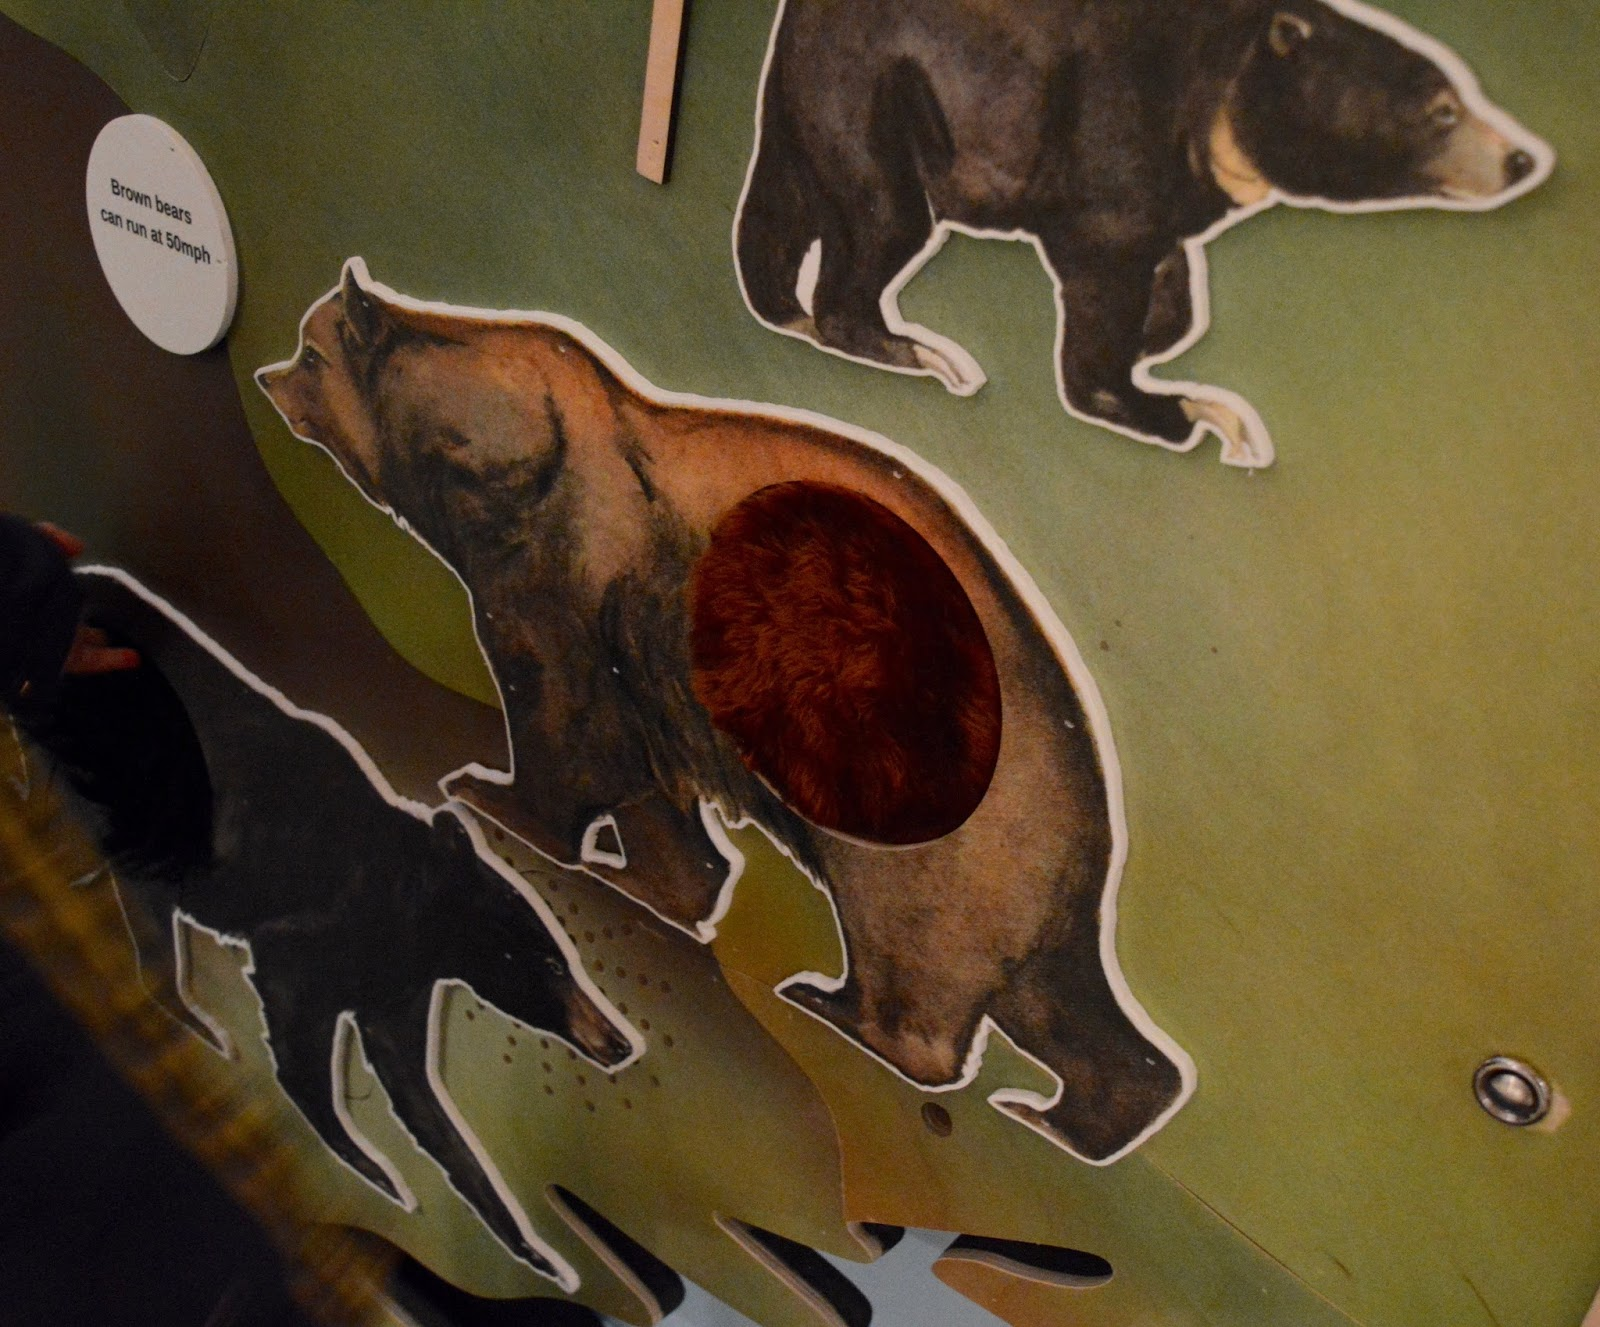 Seven Stories Newcastle | Parking & Admission plus Bears! Exhibition Review - bears sensory wall